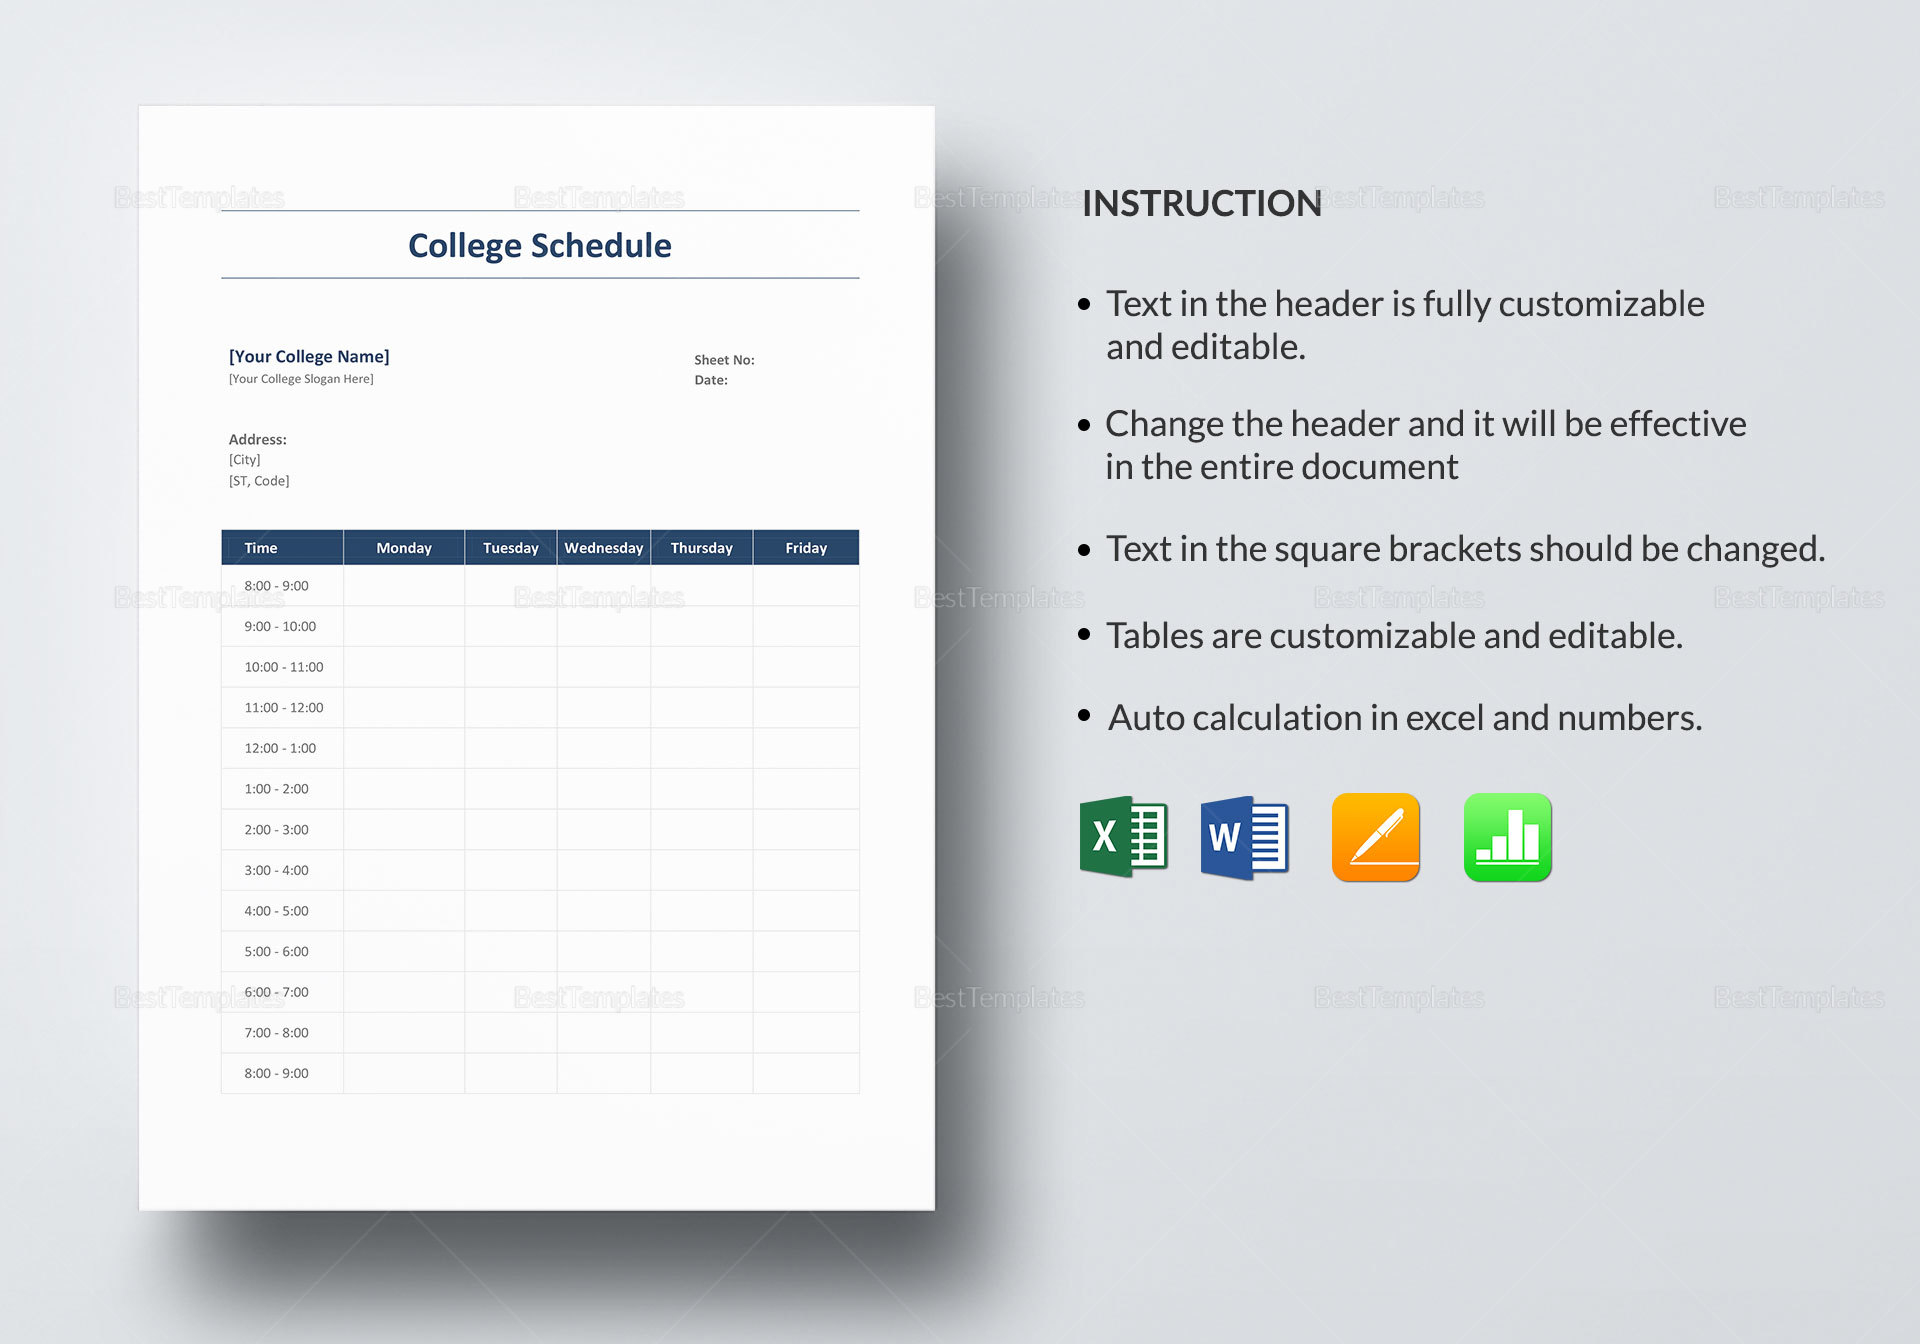 College Schedule Design